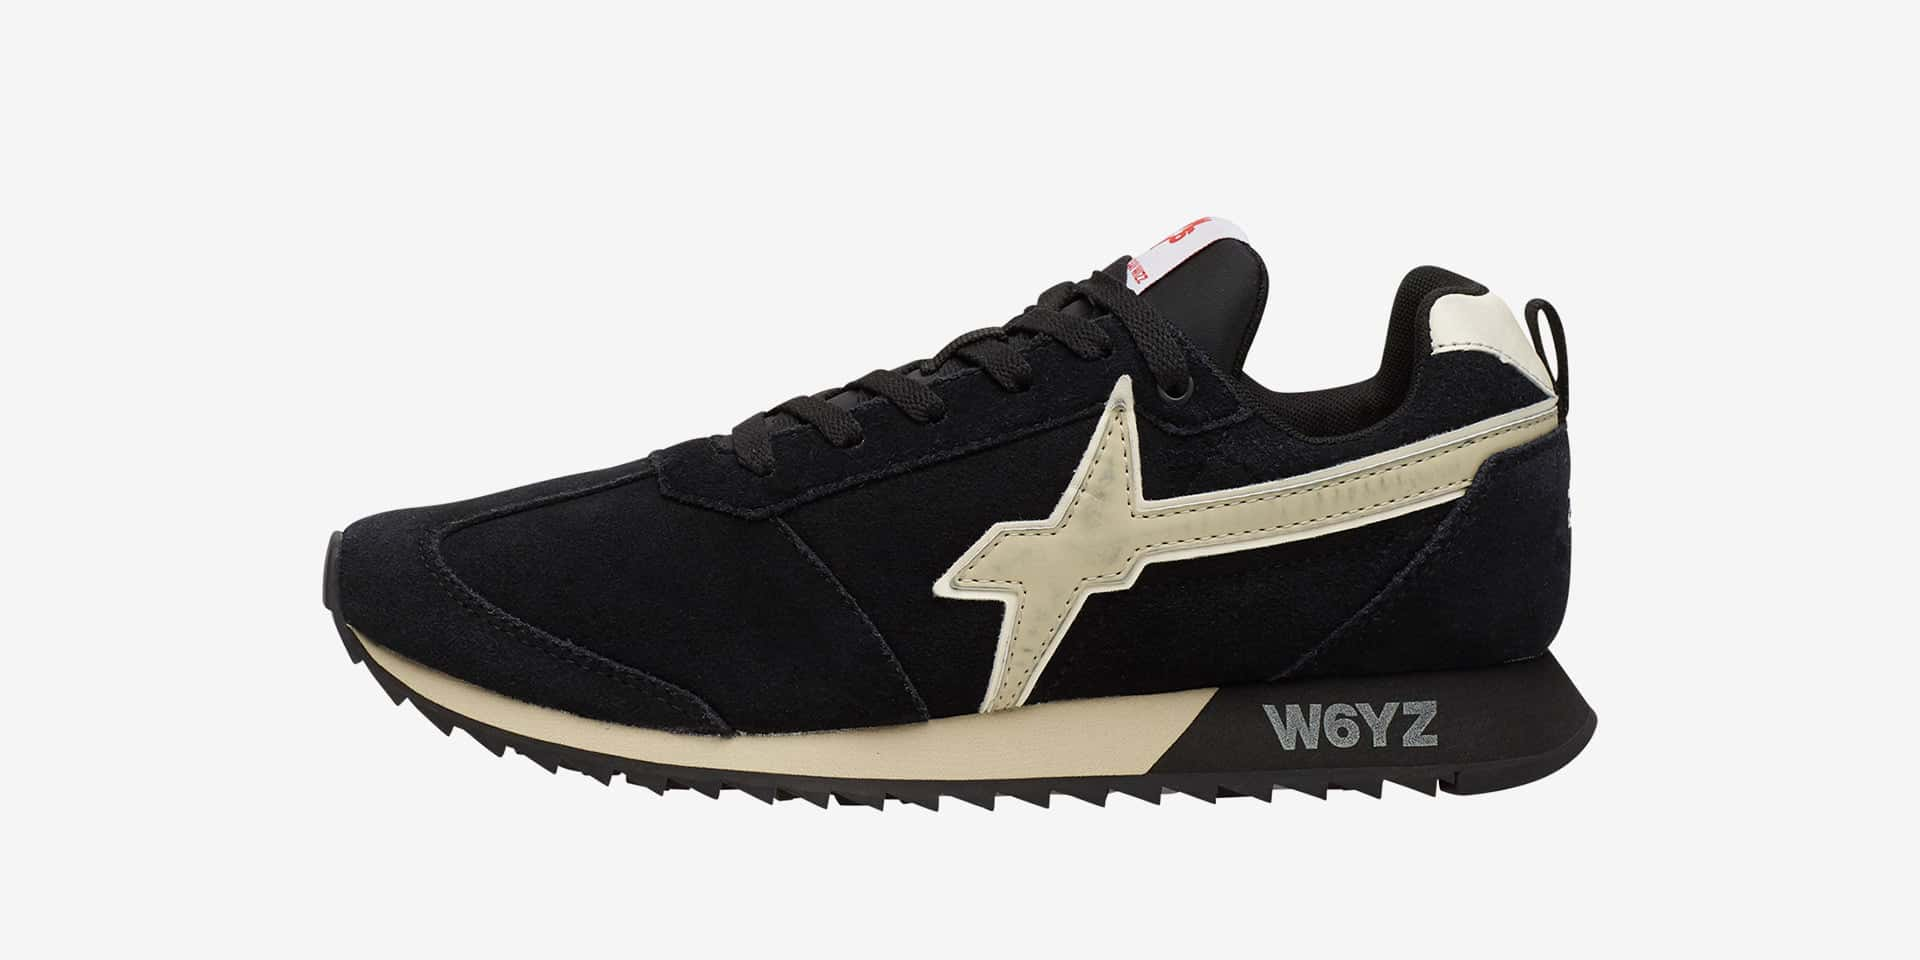 FLY-M. - Leather sneakers - Black